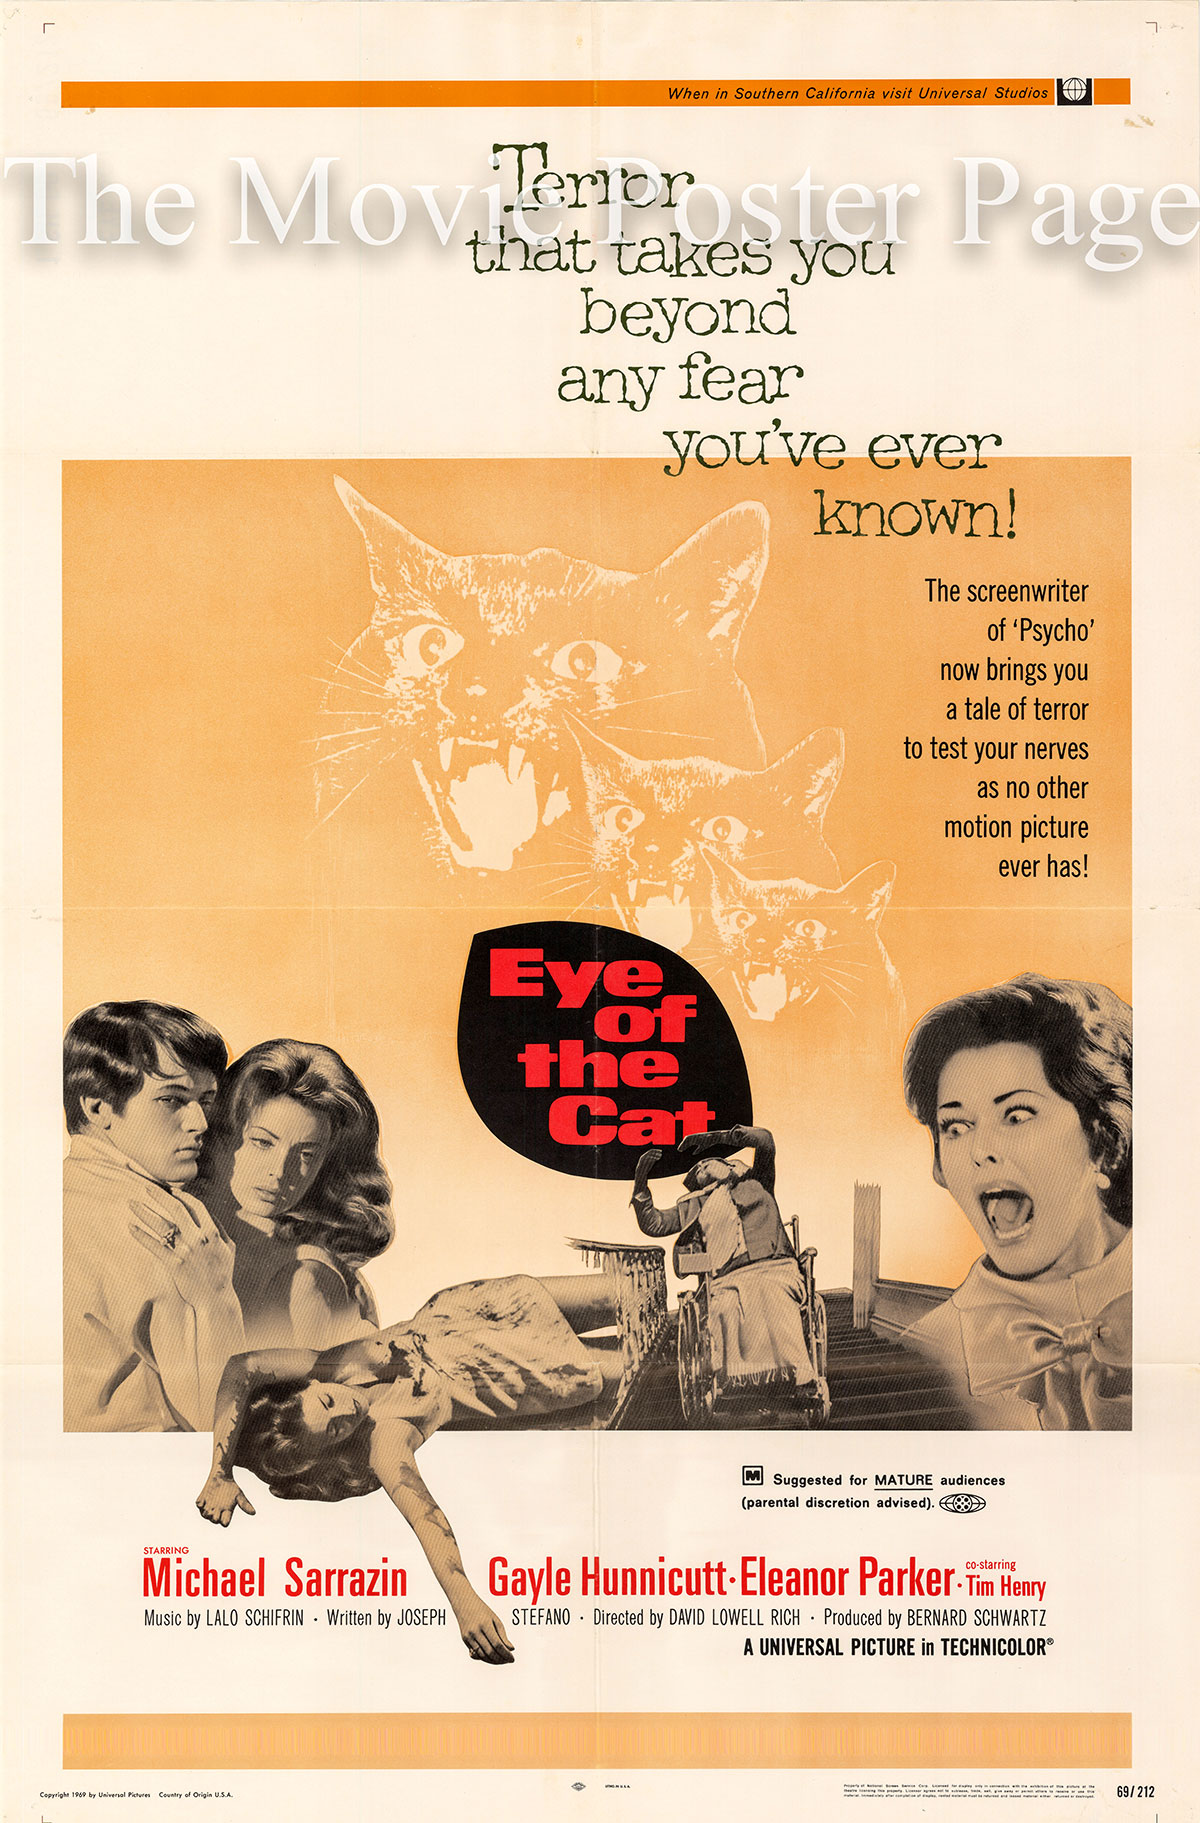 Pictured is a US one-sheet poster for the 1969 David Lowell Rich film Eye of the Cat starring Michale Sarrazin as Wylie.